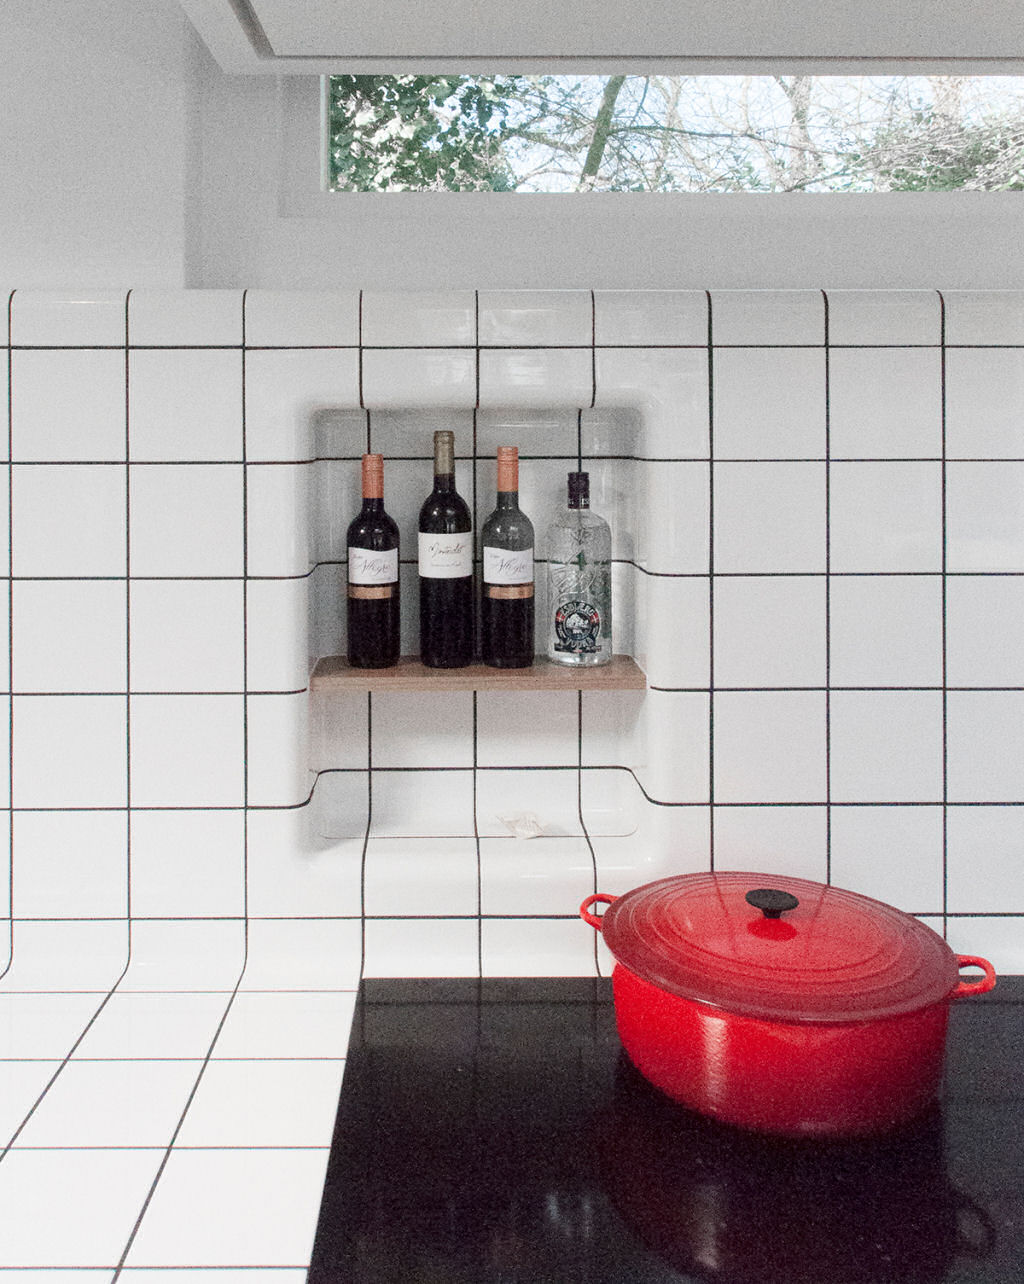 rounded tiles in niche, modern 3d functional and construction tiles available in multiple colors